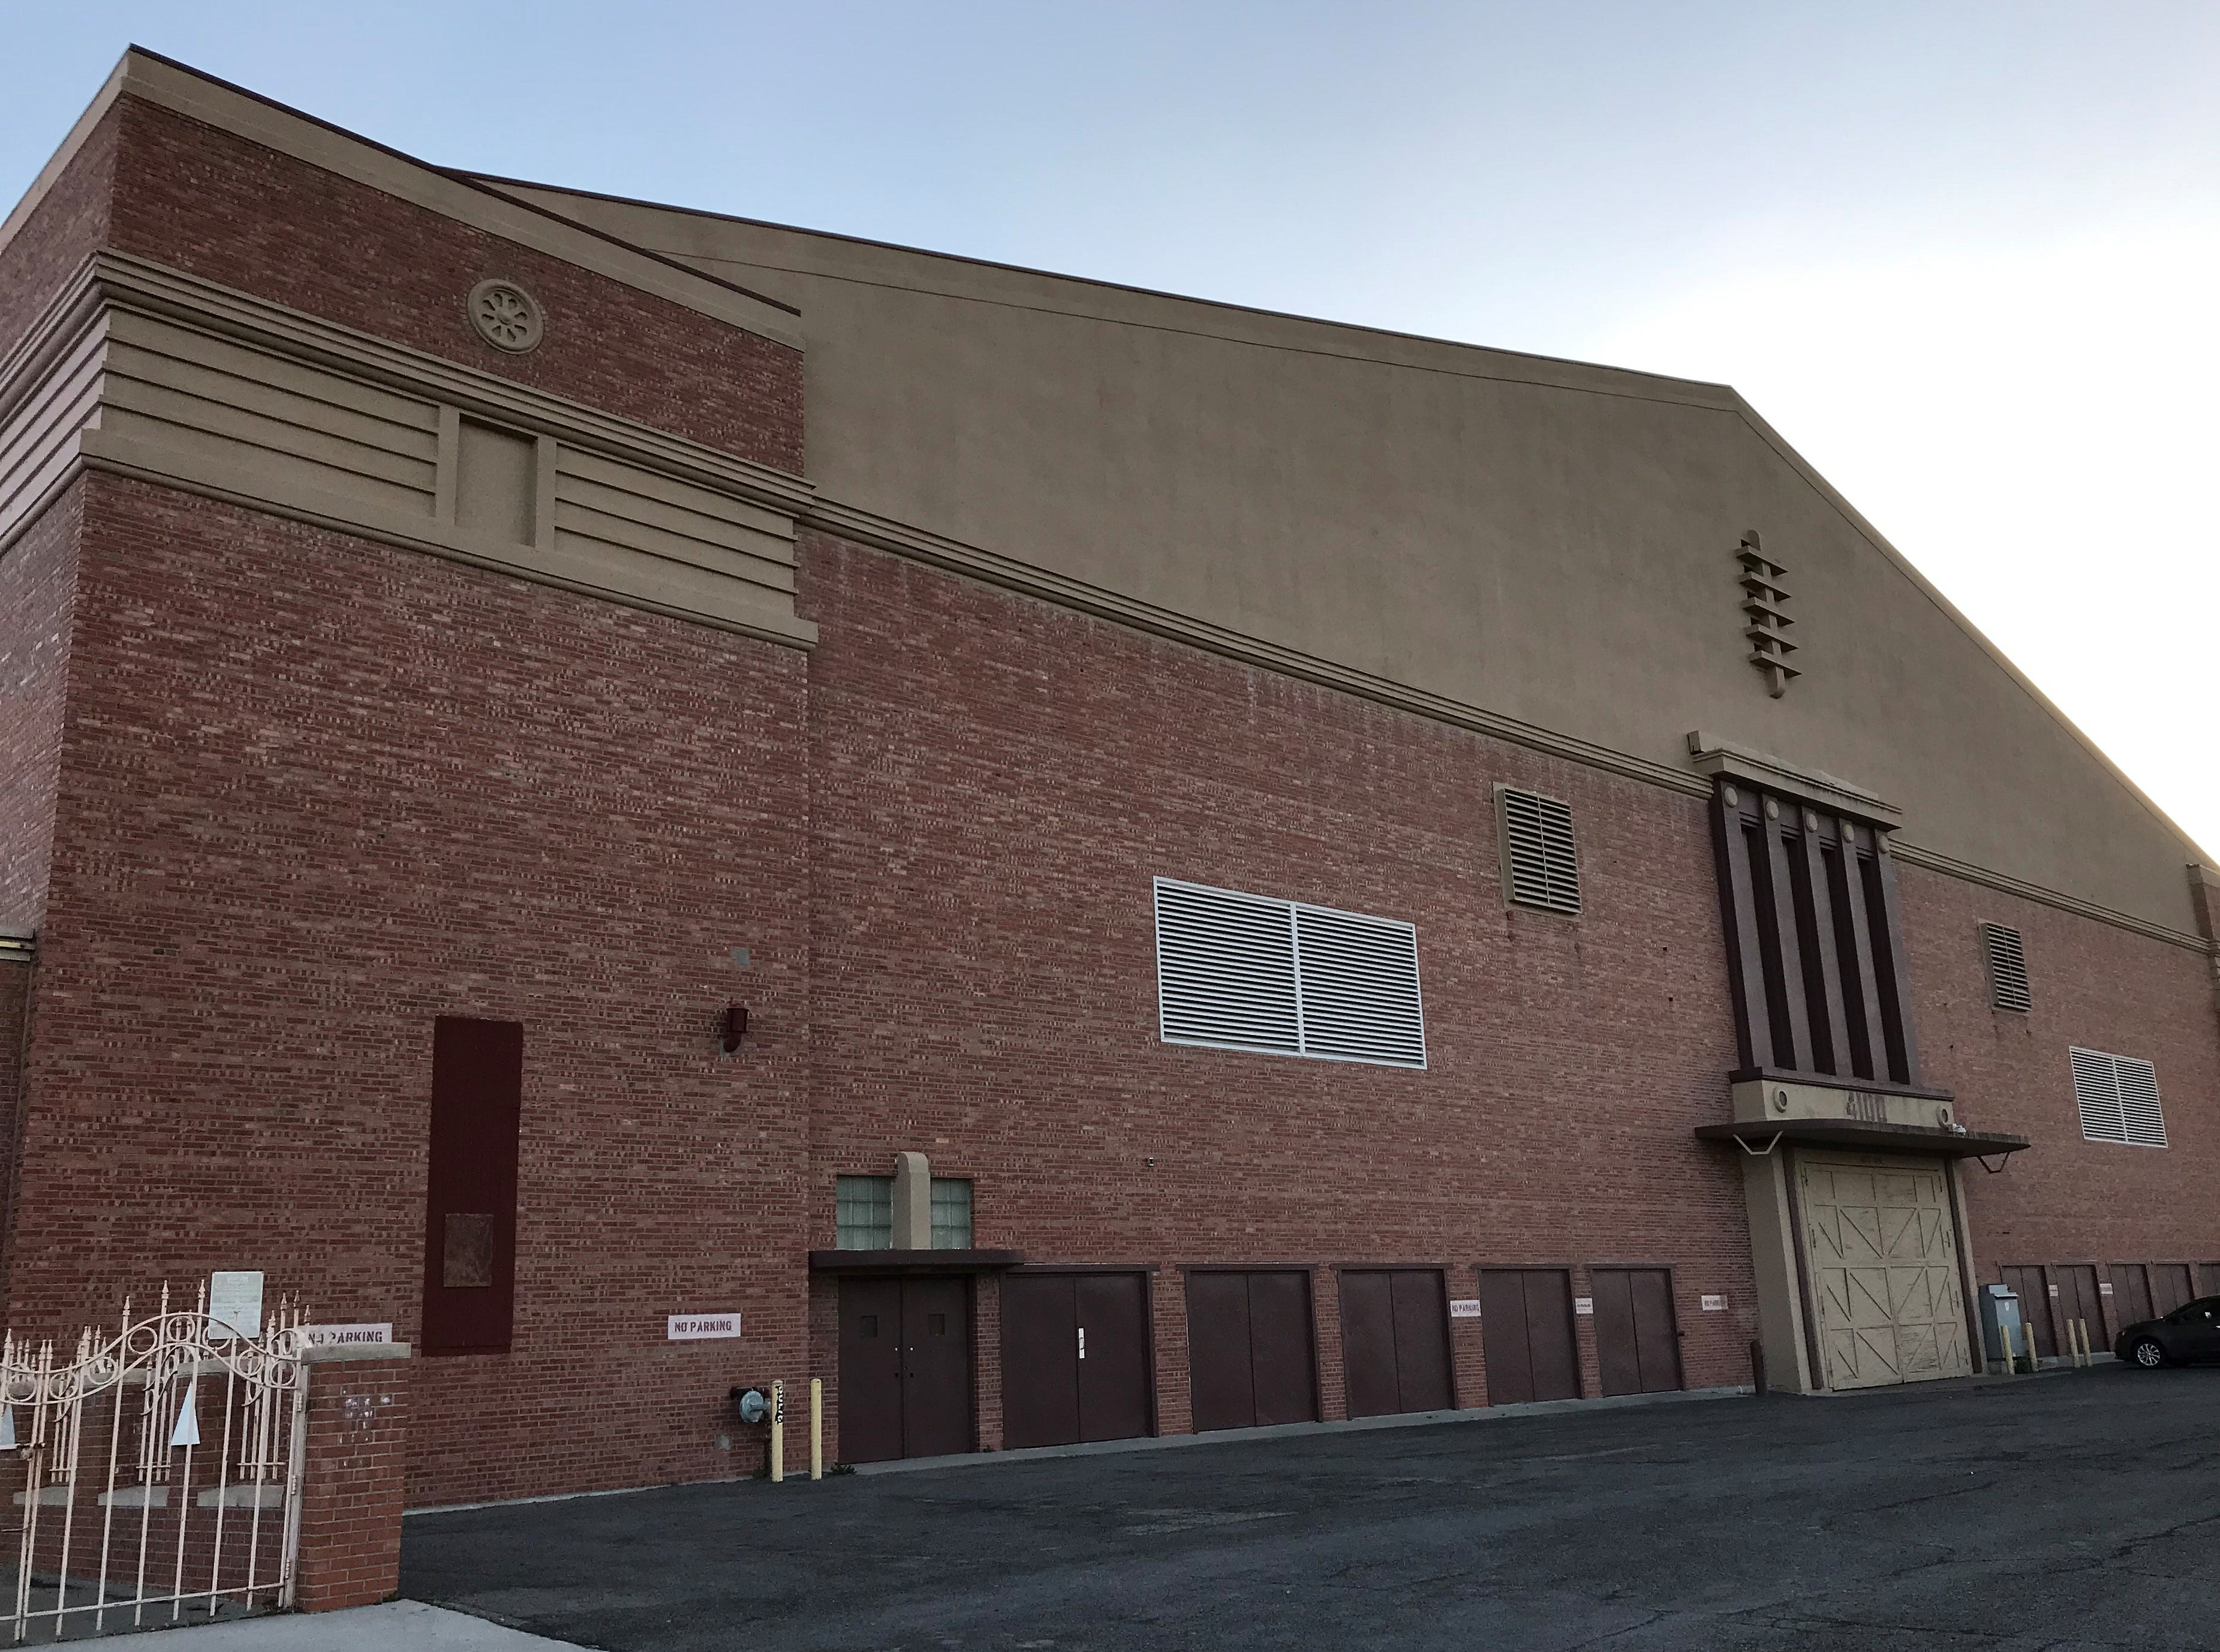 The west side of the El Paso County Coliseum is shown.